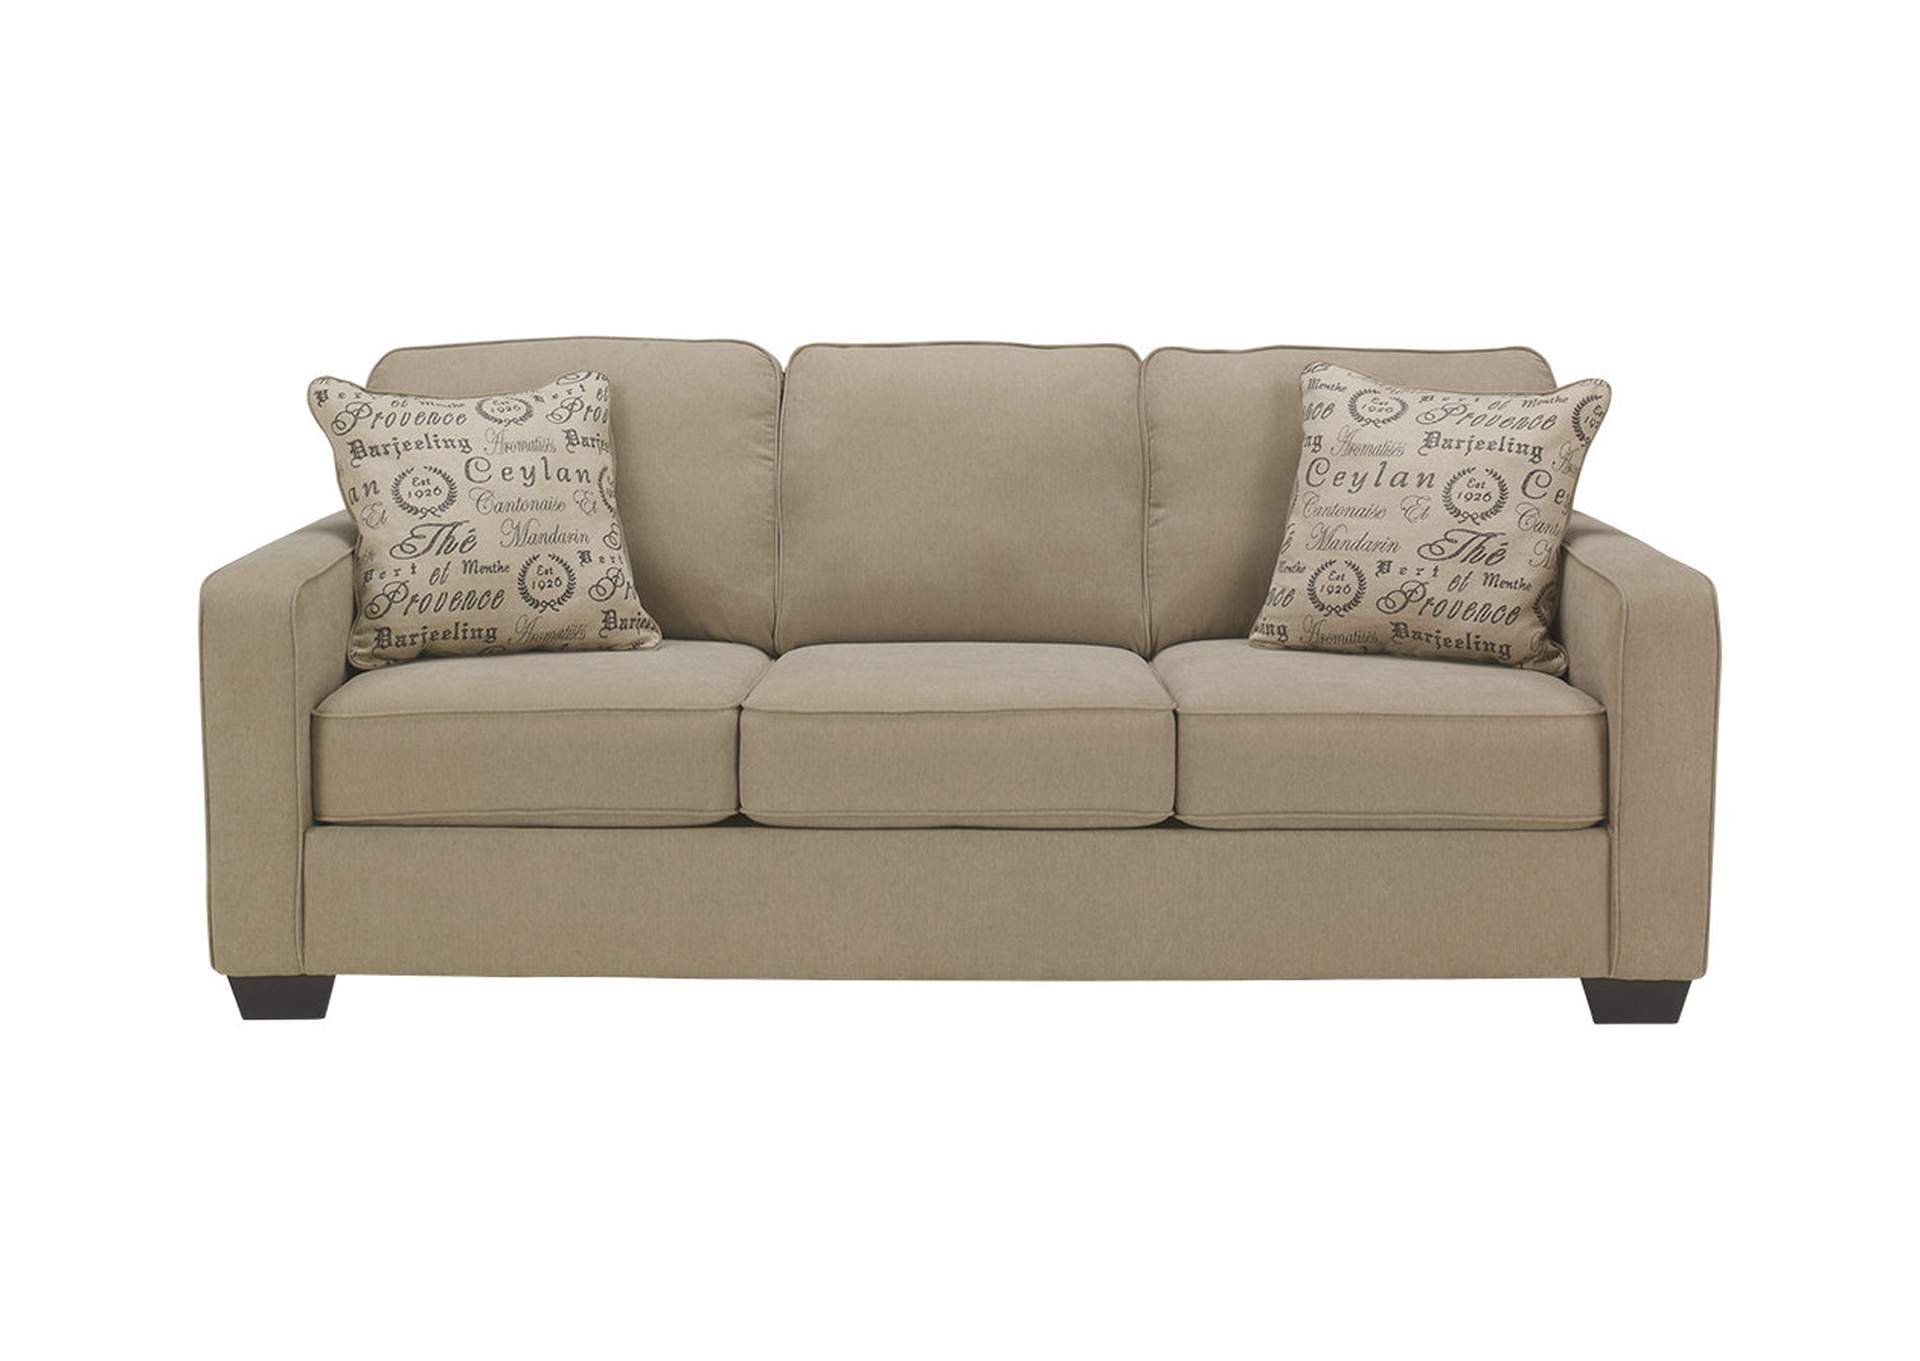 Alenya Quartz Queen Sofa Sleeper,Signature Design By Ashley